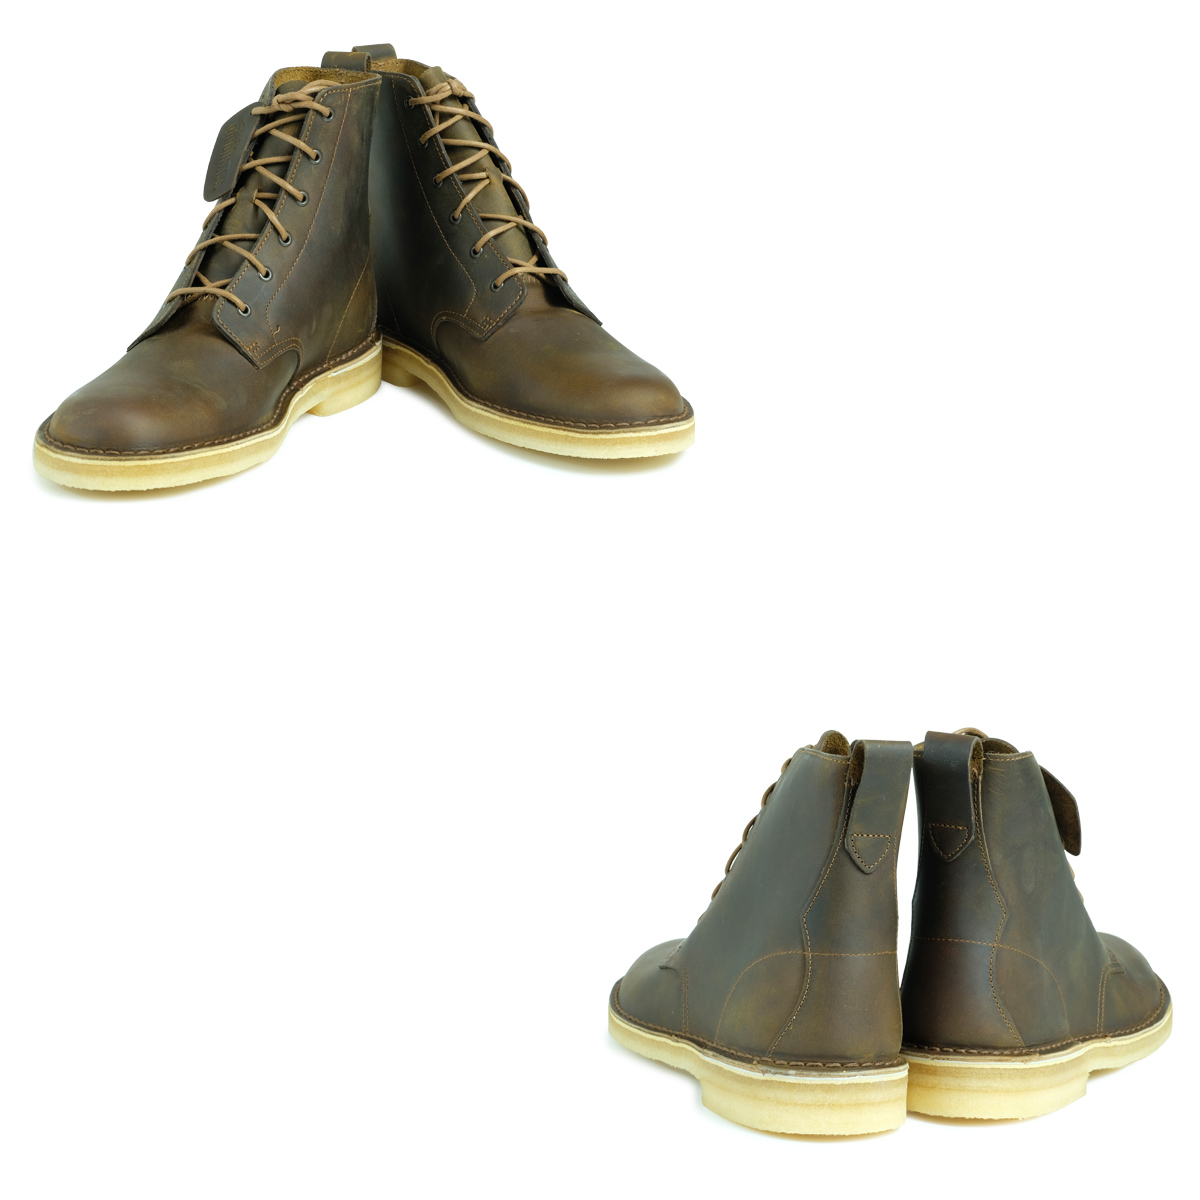 be5c3f85696 Clarks DESERT MALI kulaki dessert Mali boots men 26113253 shoes brown [1711]